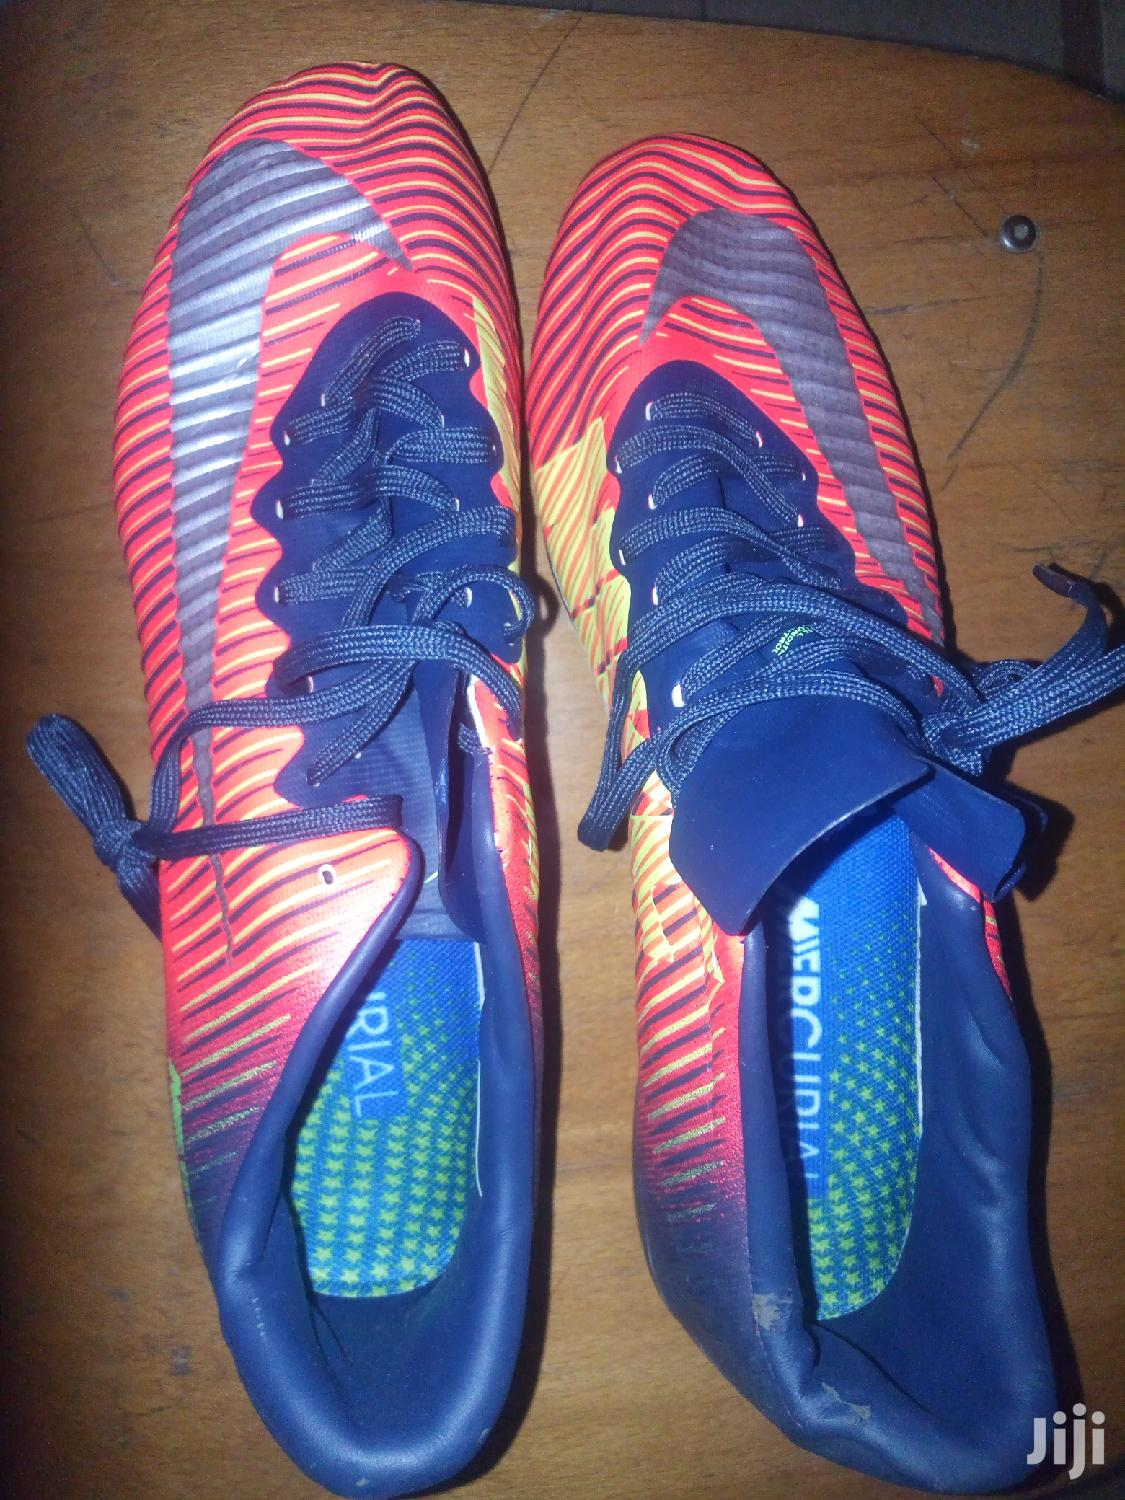 Nike Mecurial Football Boots   Shoes for sale in Nungua East, Greater Accra, Ghana